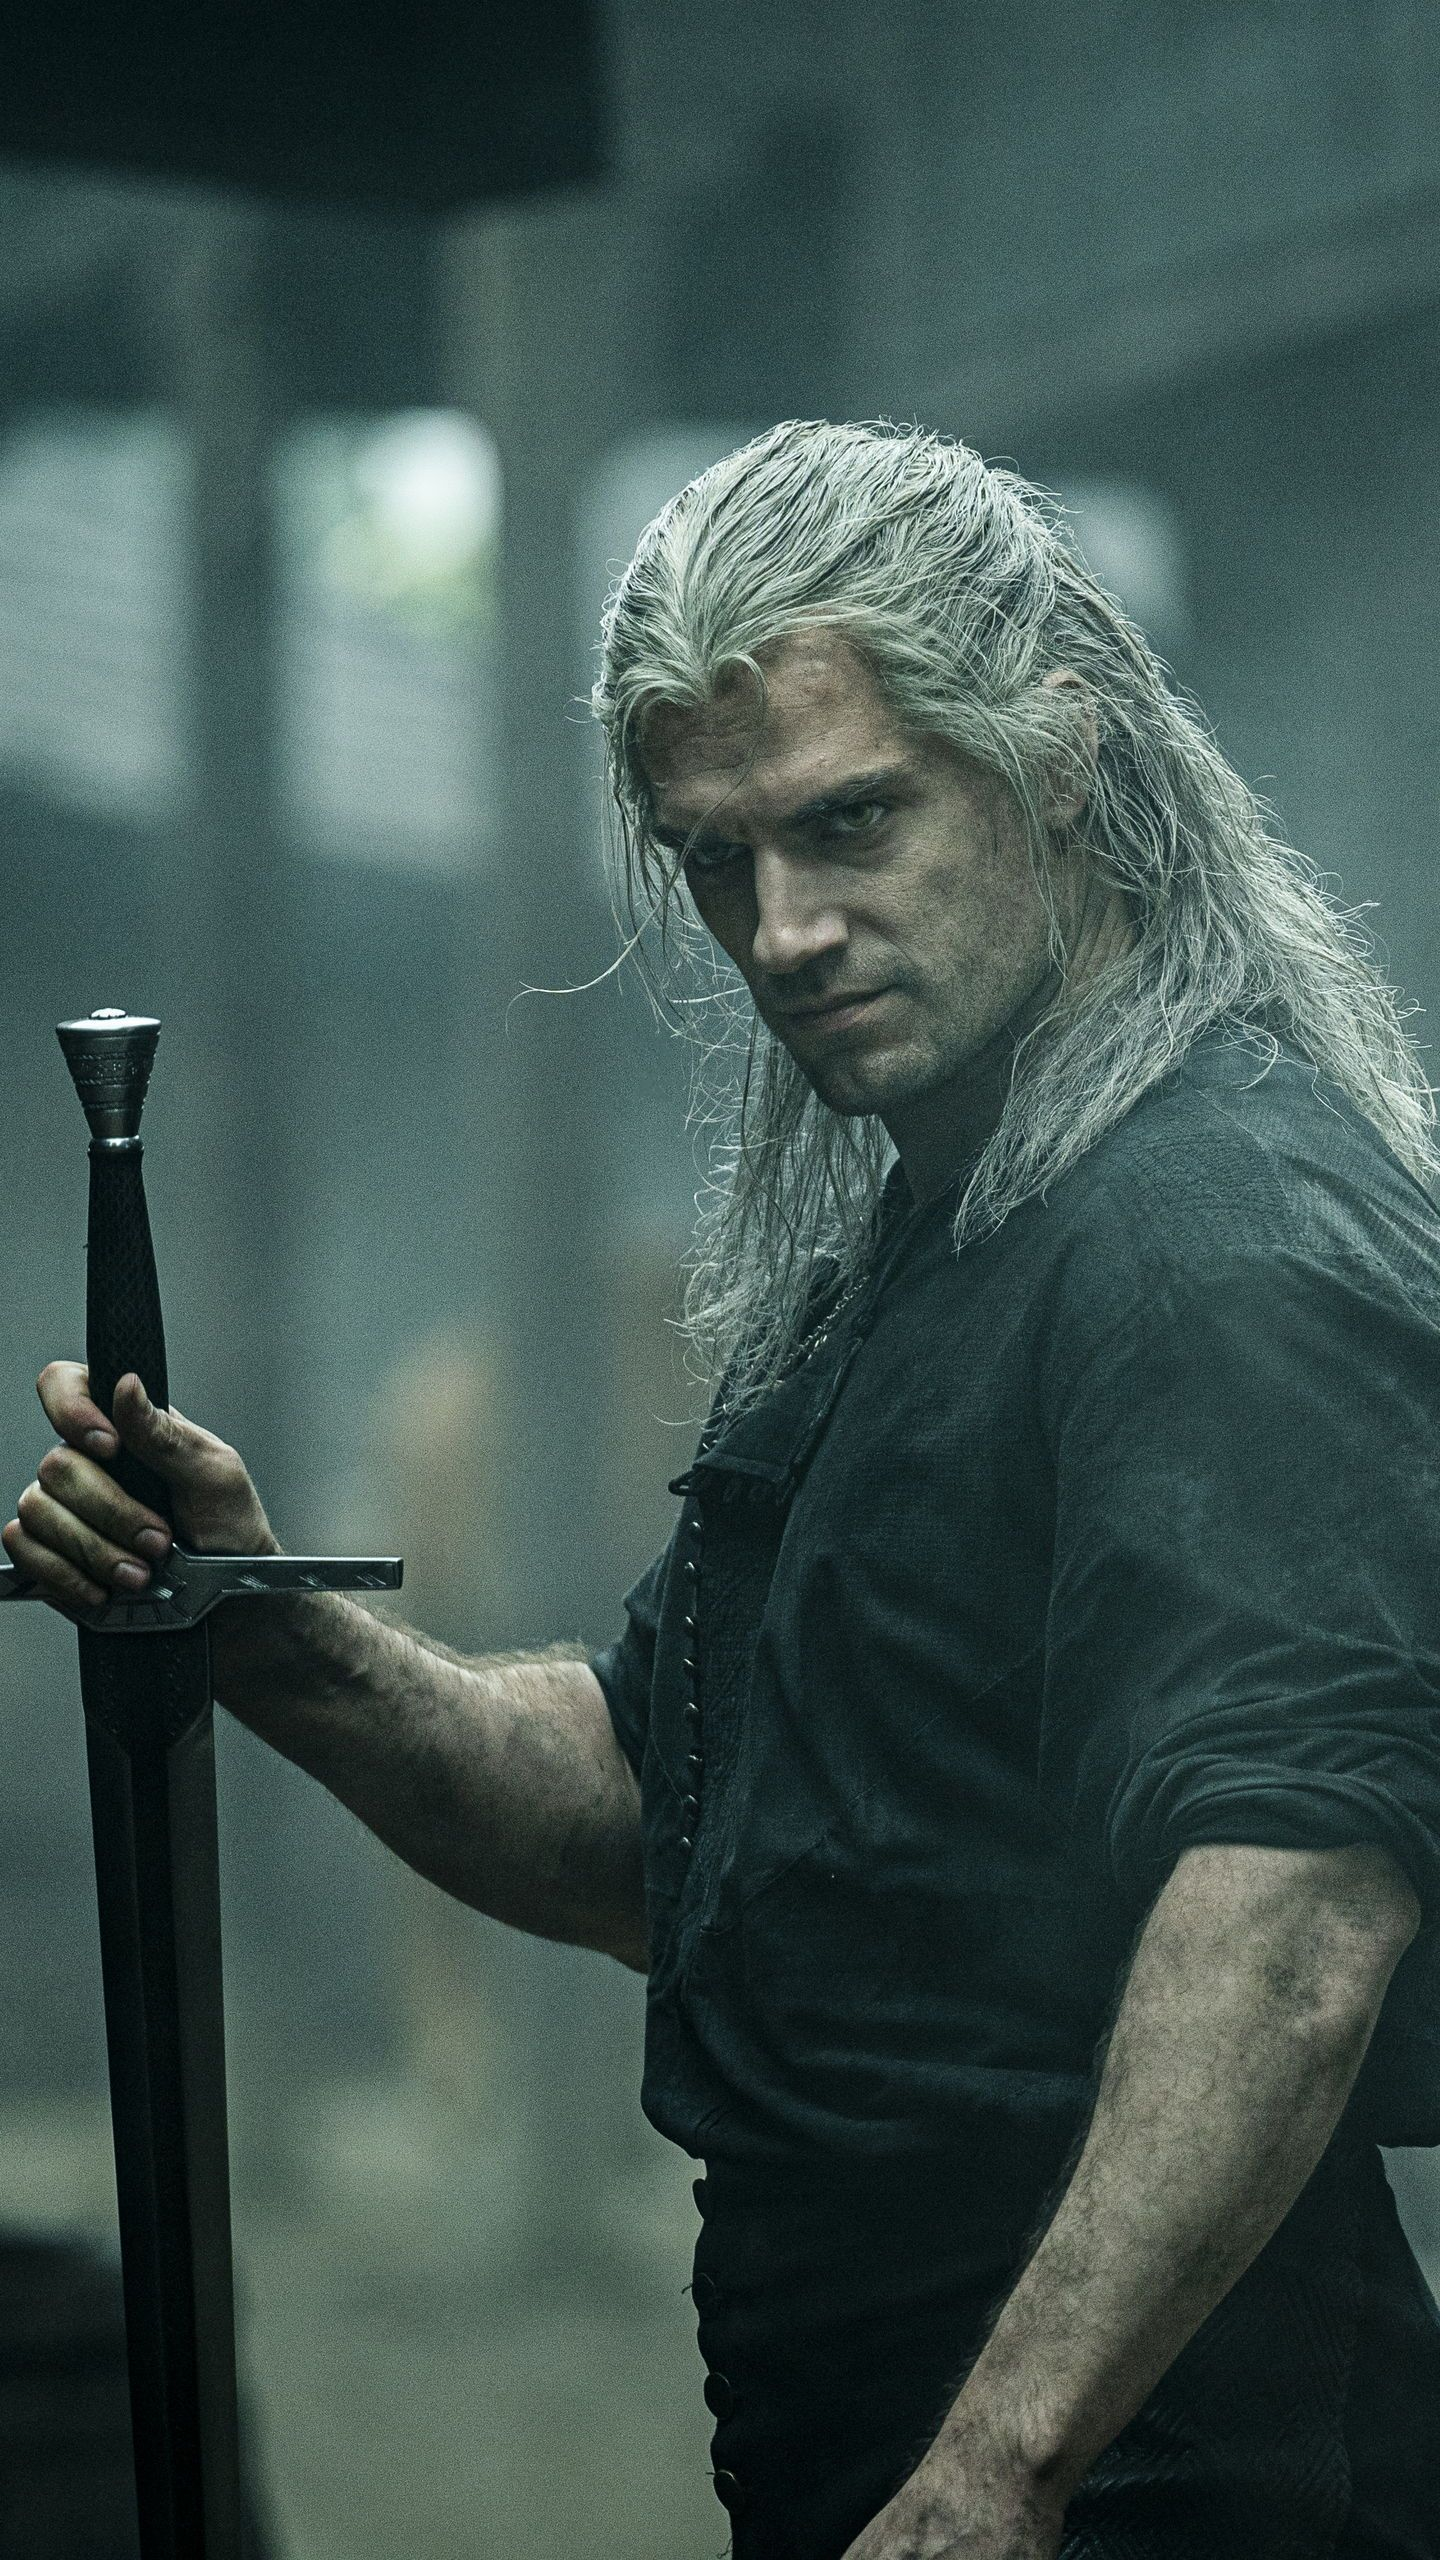 The Witcher Netflix Tv Series Release Date Cast Story The Witcher The Witcher Netflix Geralt Of Rivia